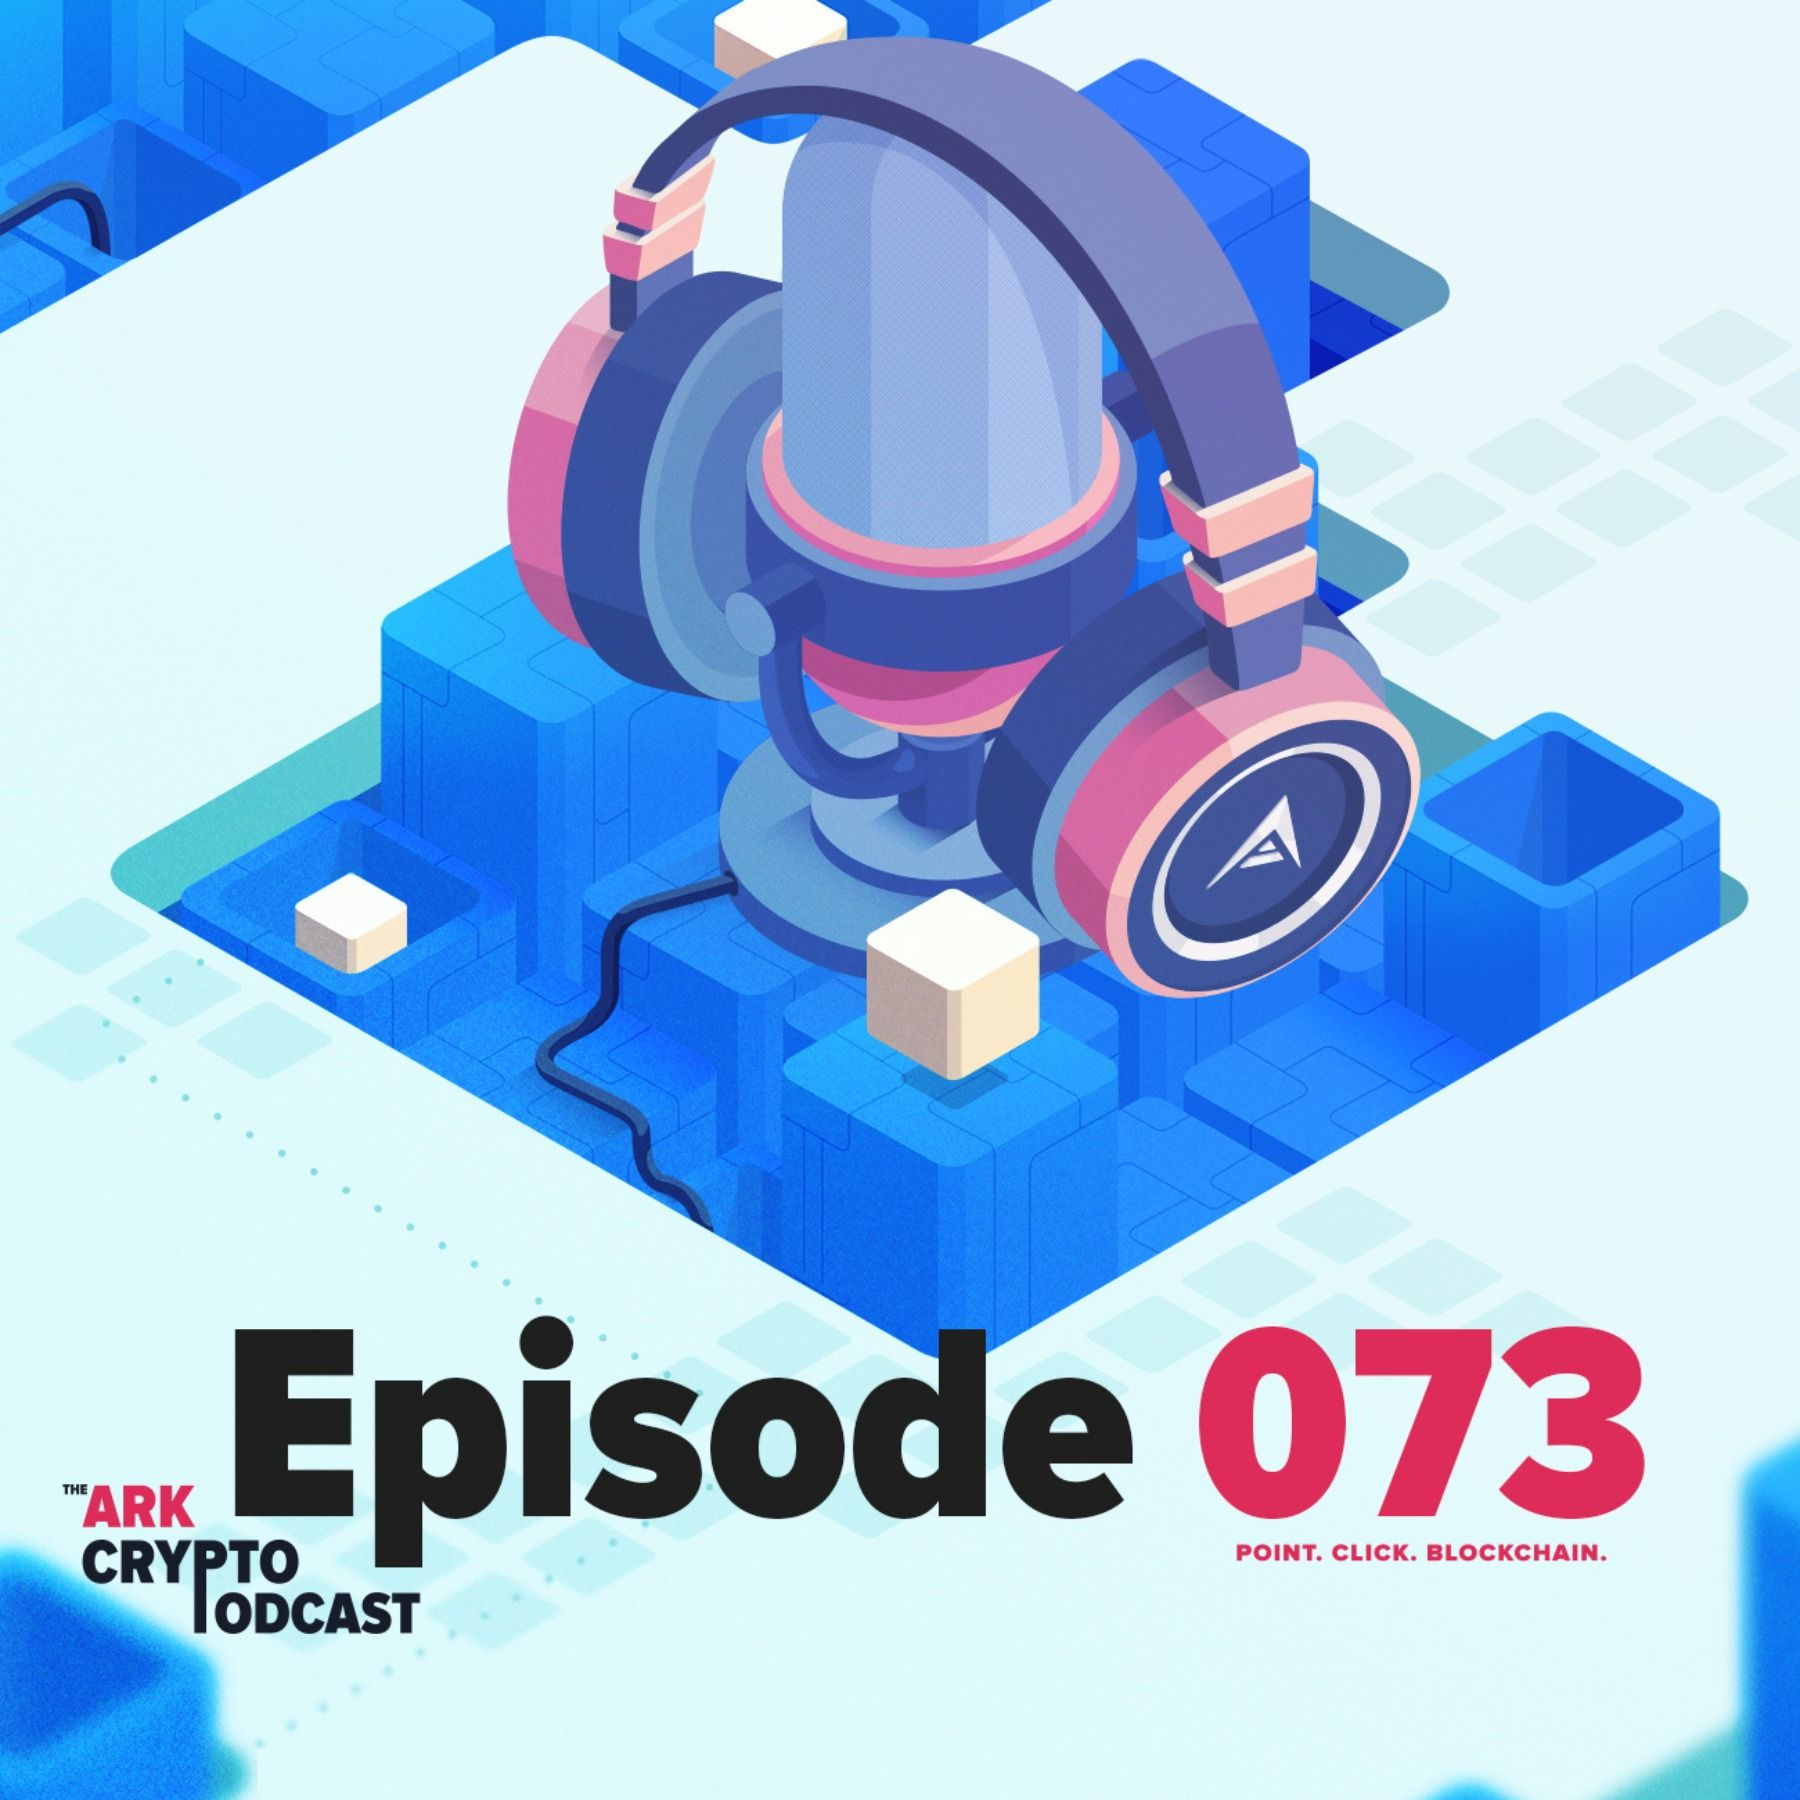 ARK Crypto Podcast #073 - Unikname Building with ARK Core Featuring CEO Laurent and Marketing Executive Marine